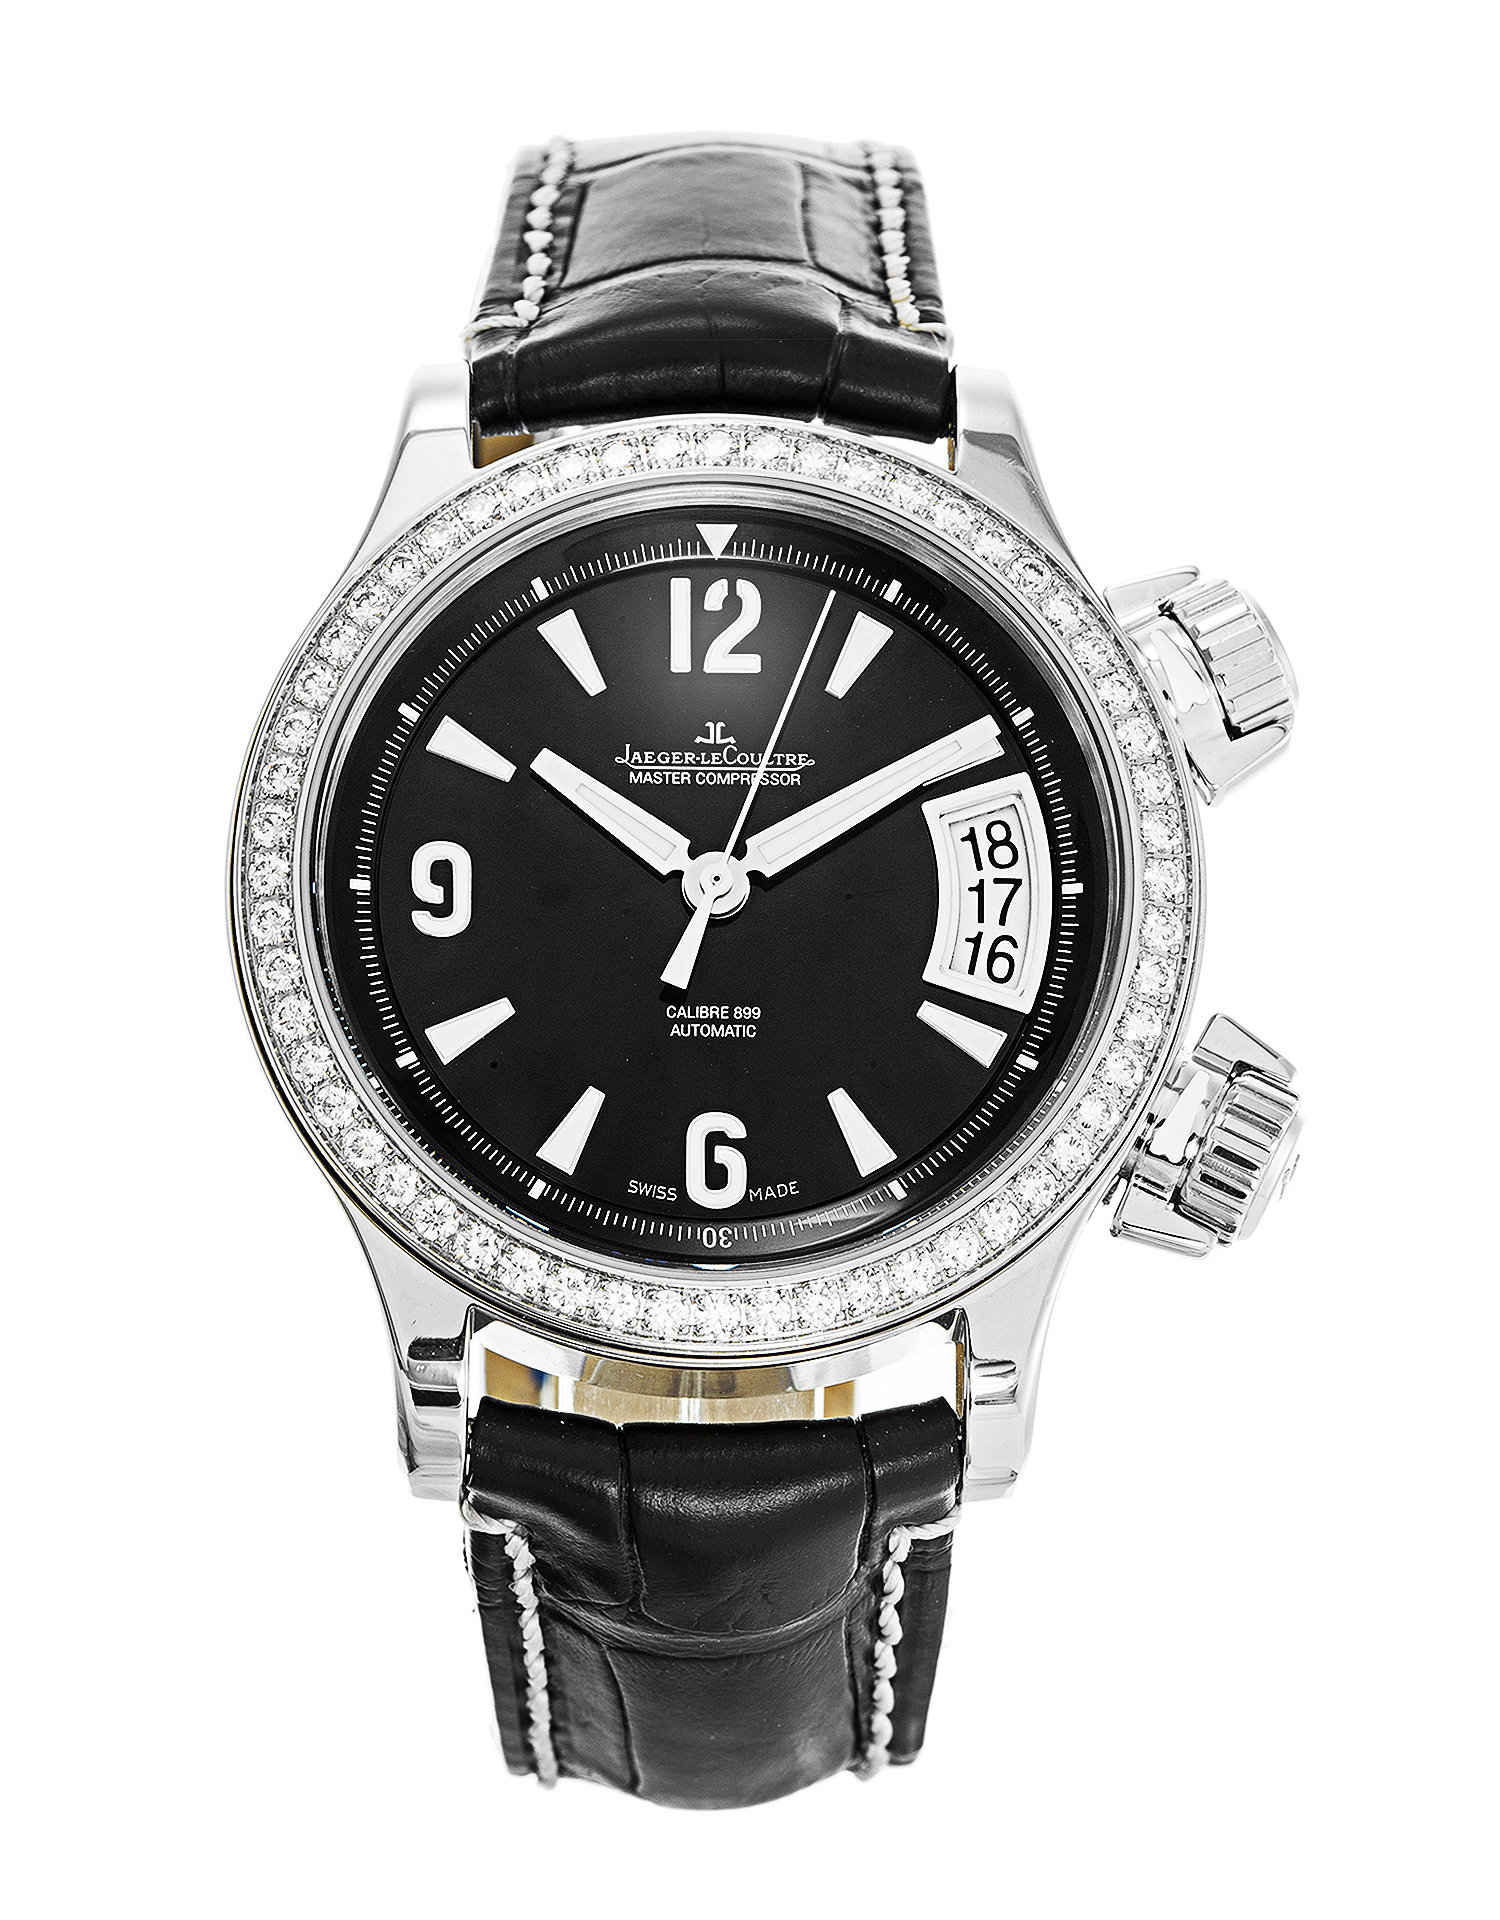 Jaeger-LeCoultre Master Compressor 148 8 37 Watch